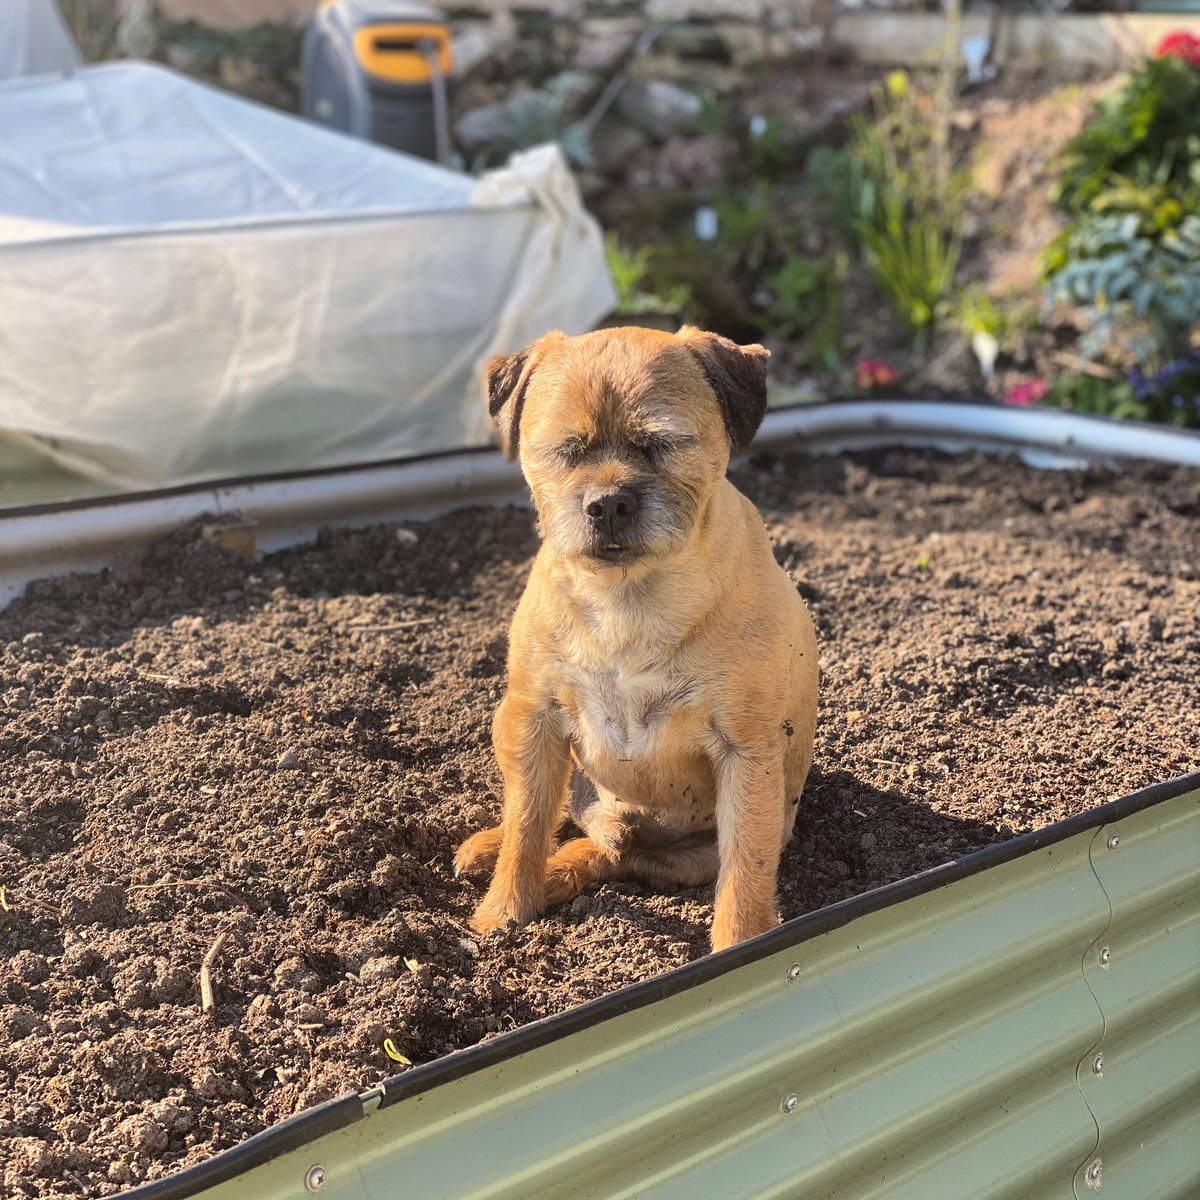 This dog is crackers! He actually fell asleep sitting up in the raised bed!!!  #btposse #dogs #dog #dogsofinstagrampic.twitter.com/yodNUs0mvG